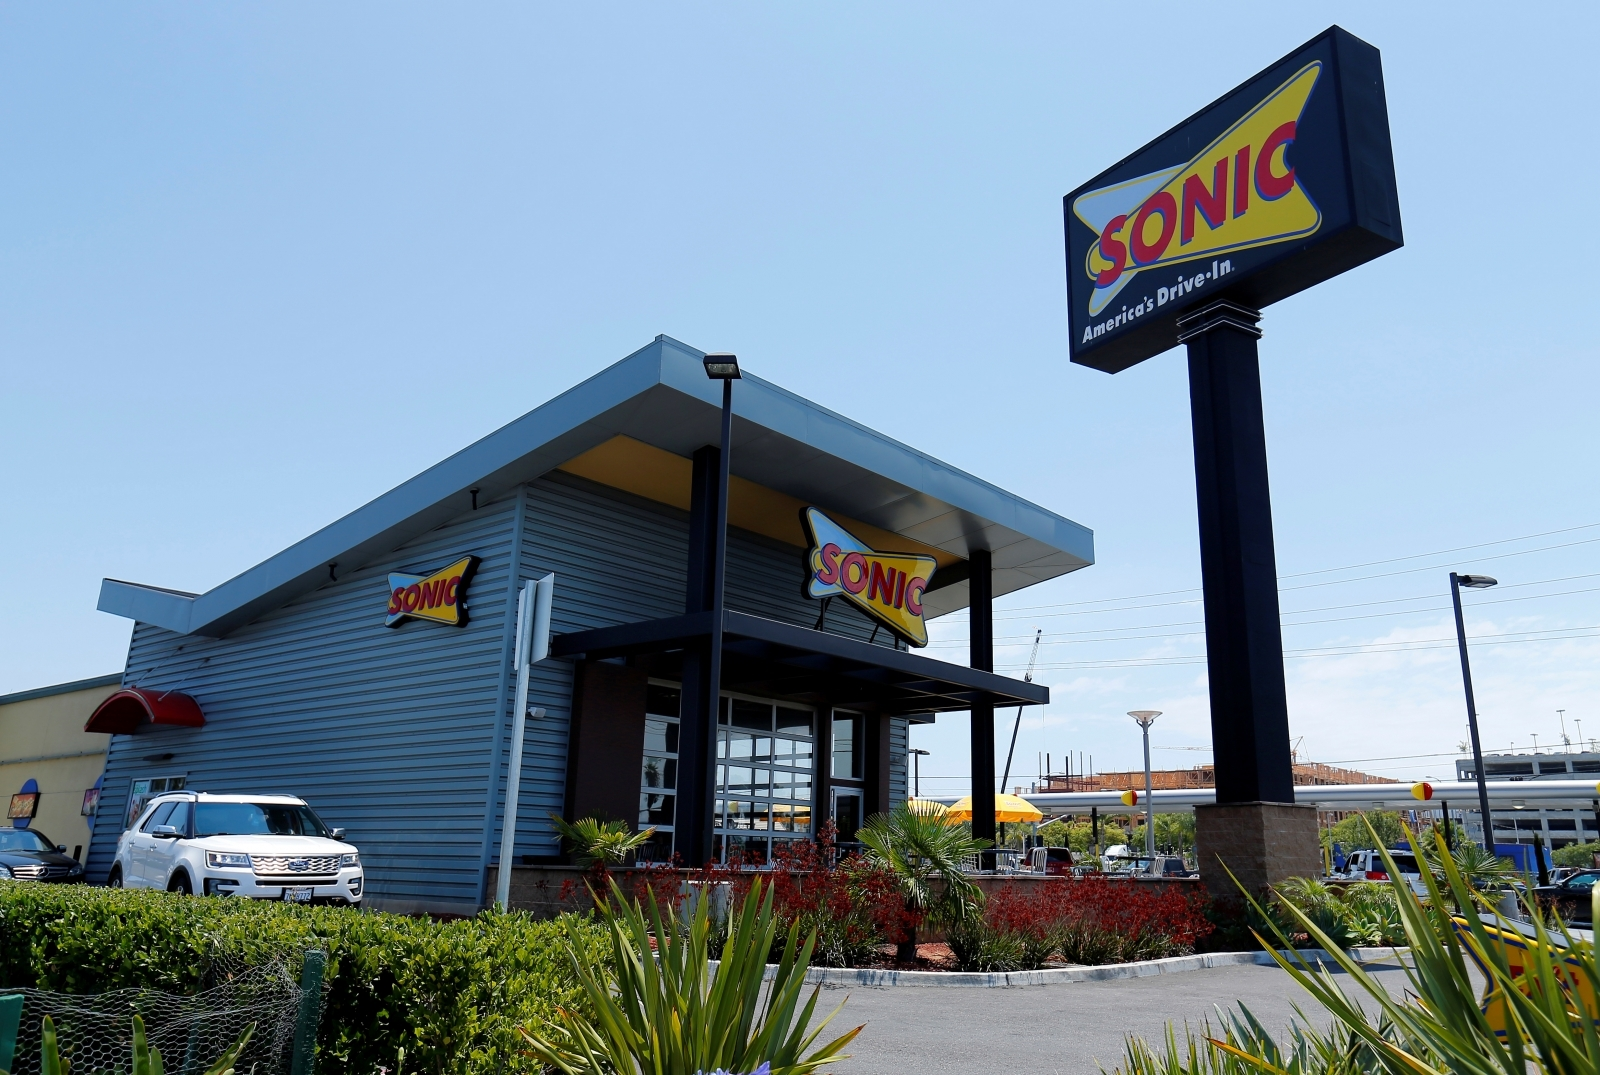 SONIC Drive-In Suffers Payment System Security Breach